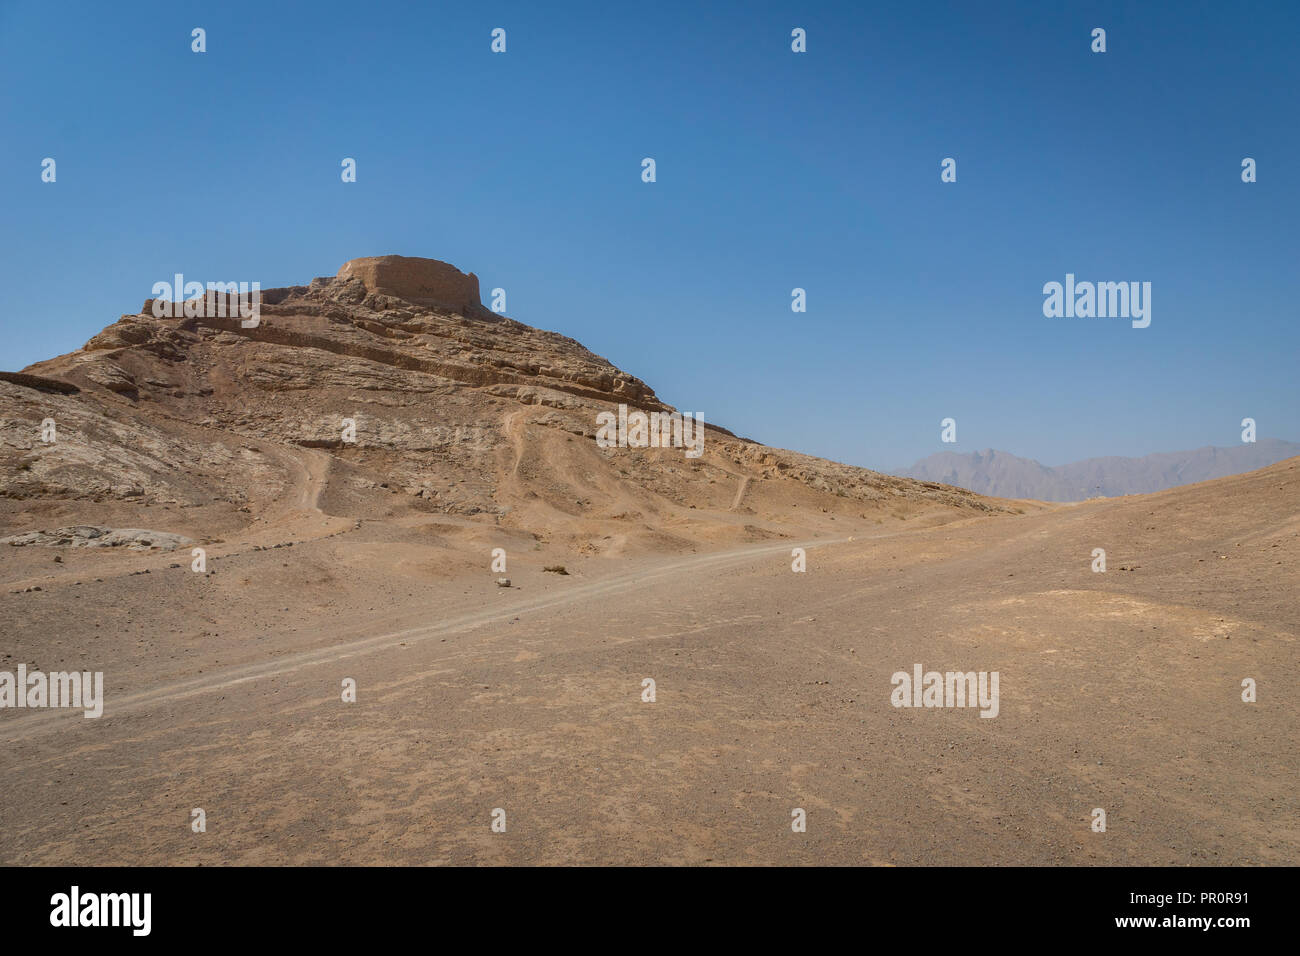 Tower of Silence, ancient zoroastrian mountain religious site in Yazd, Iran Stock Photo